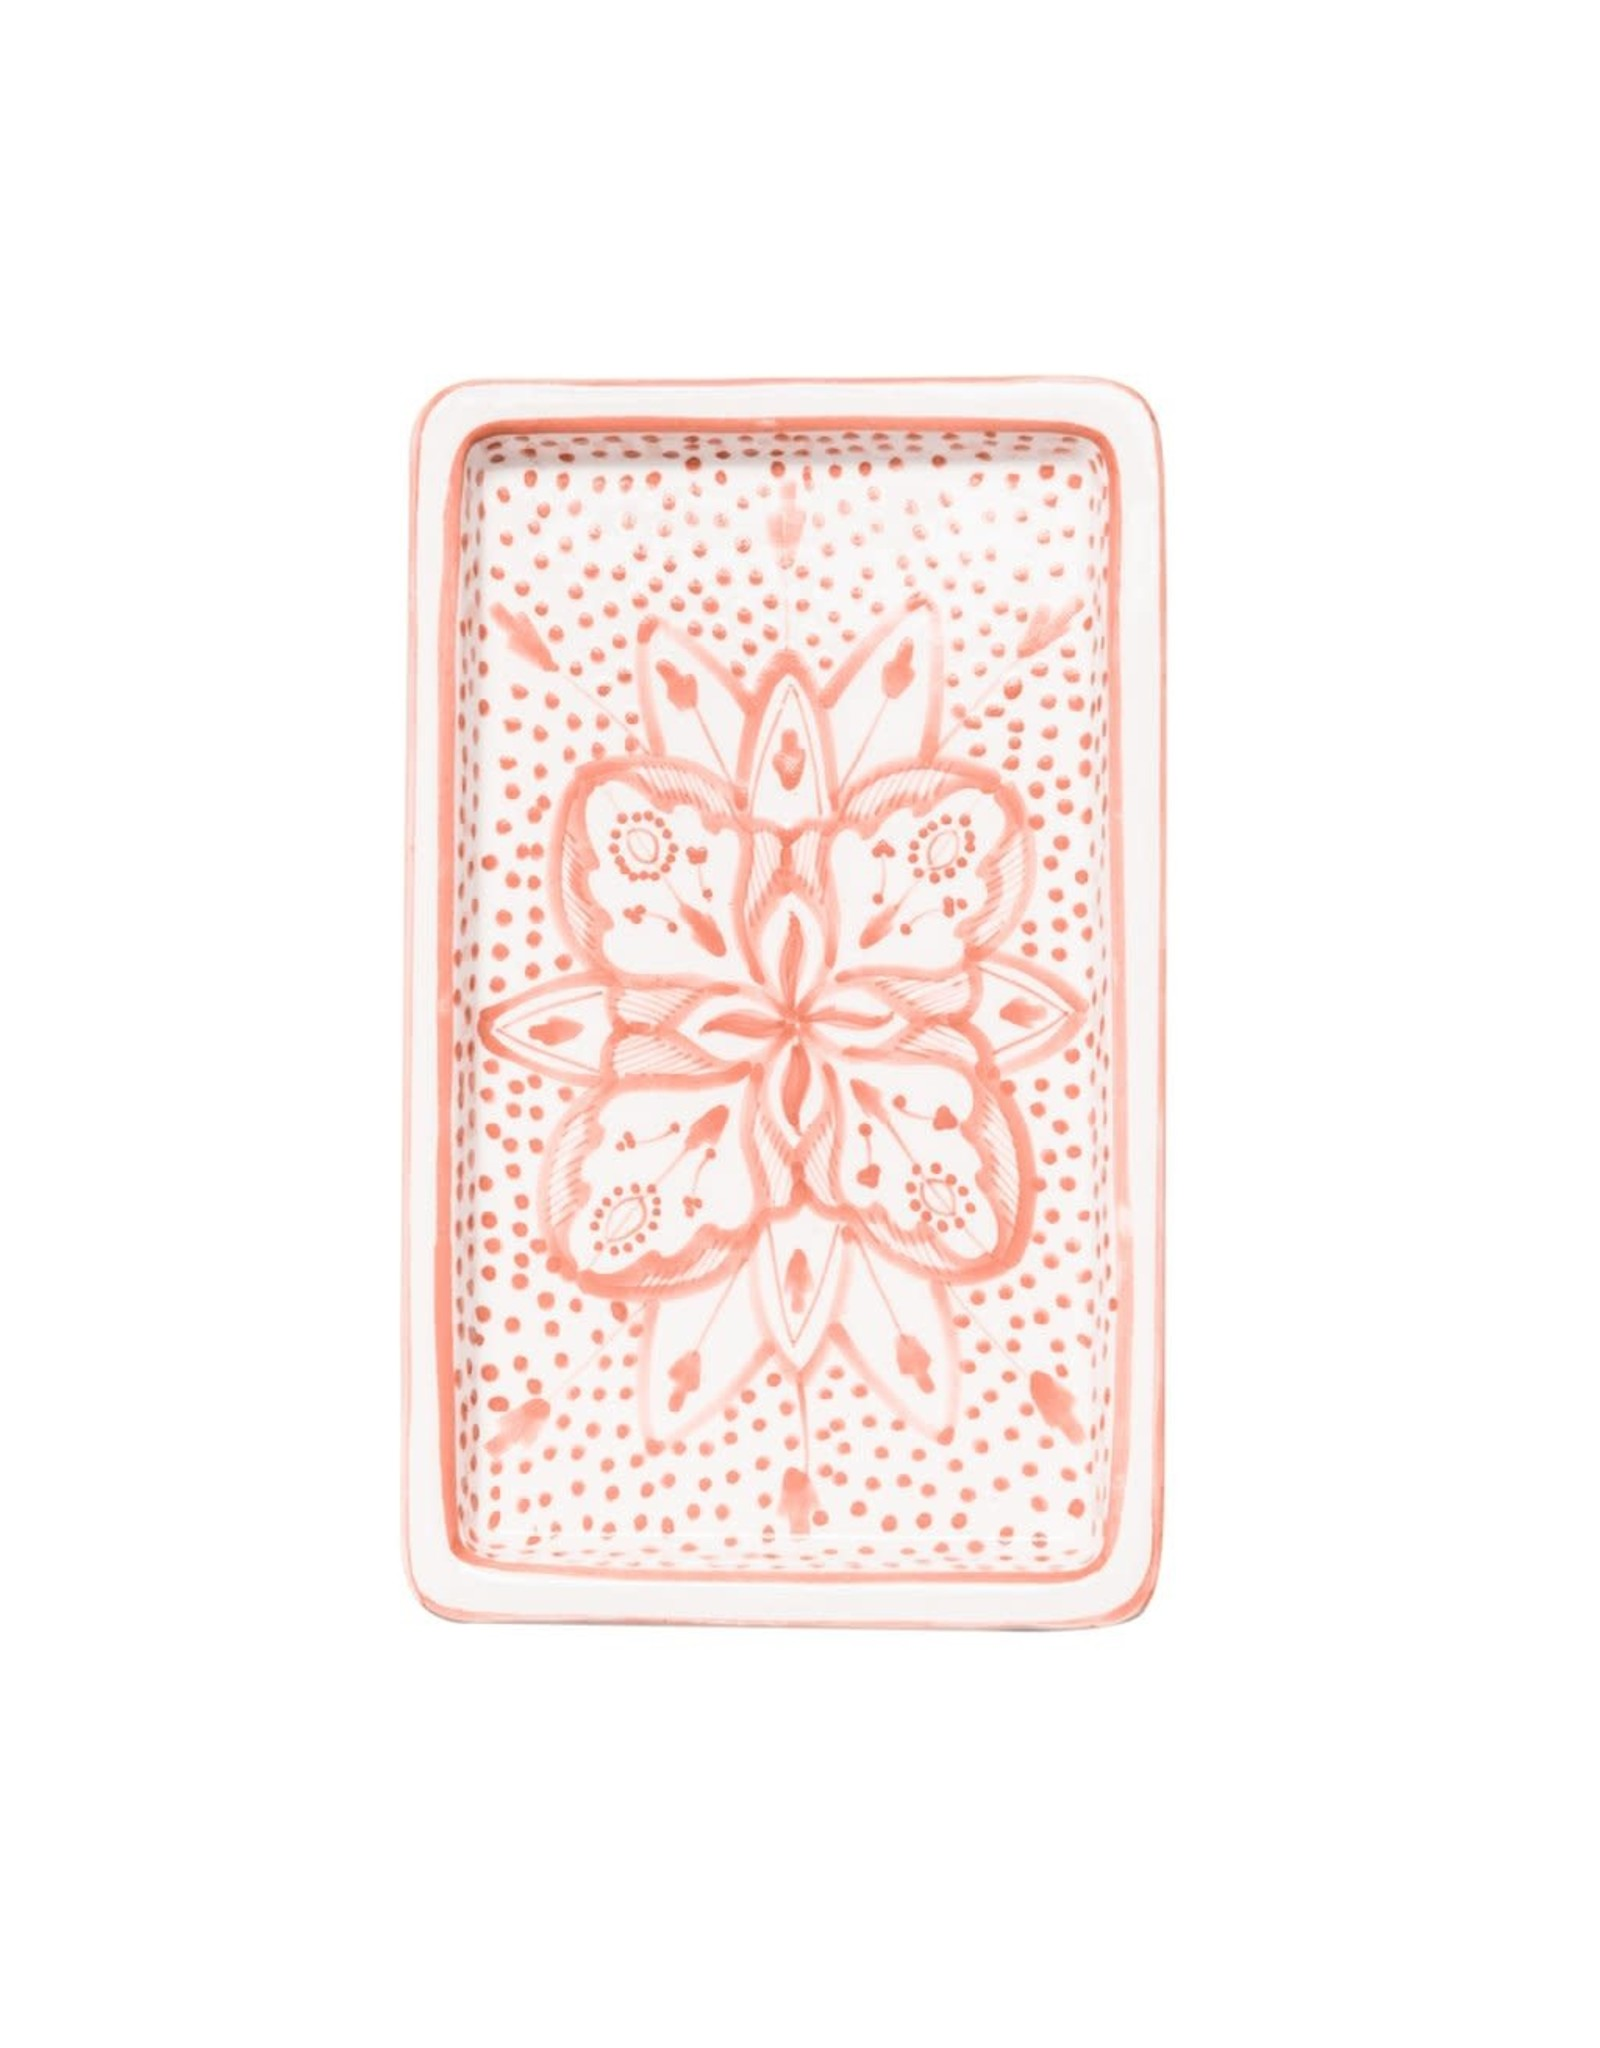 Rectangle Floral Ceramic Plate Pink, Tunisia